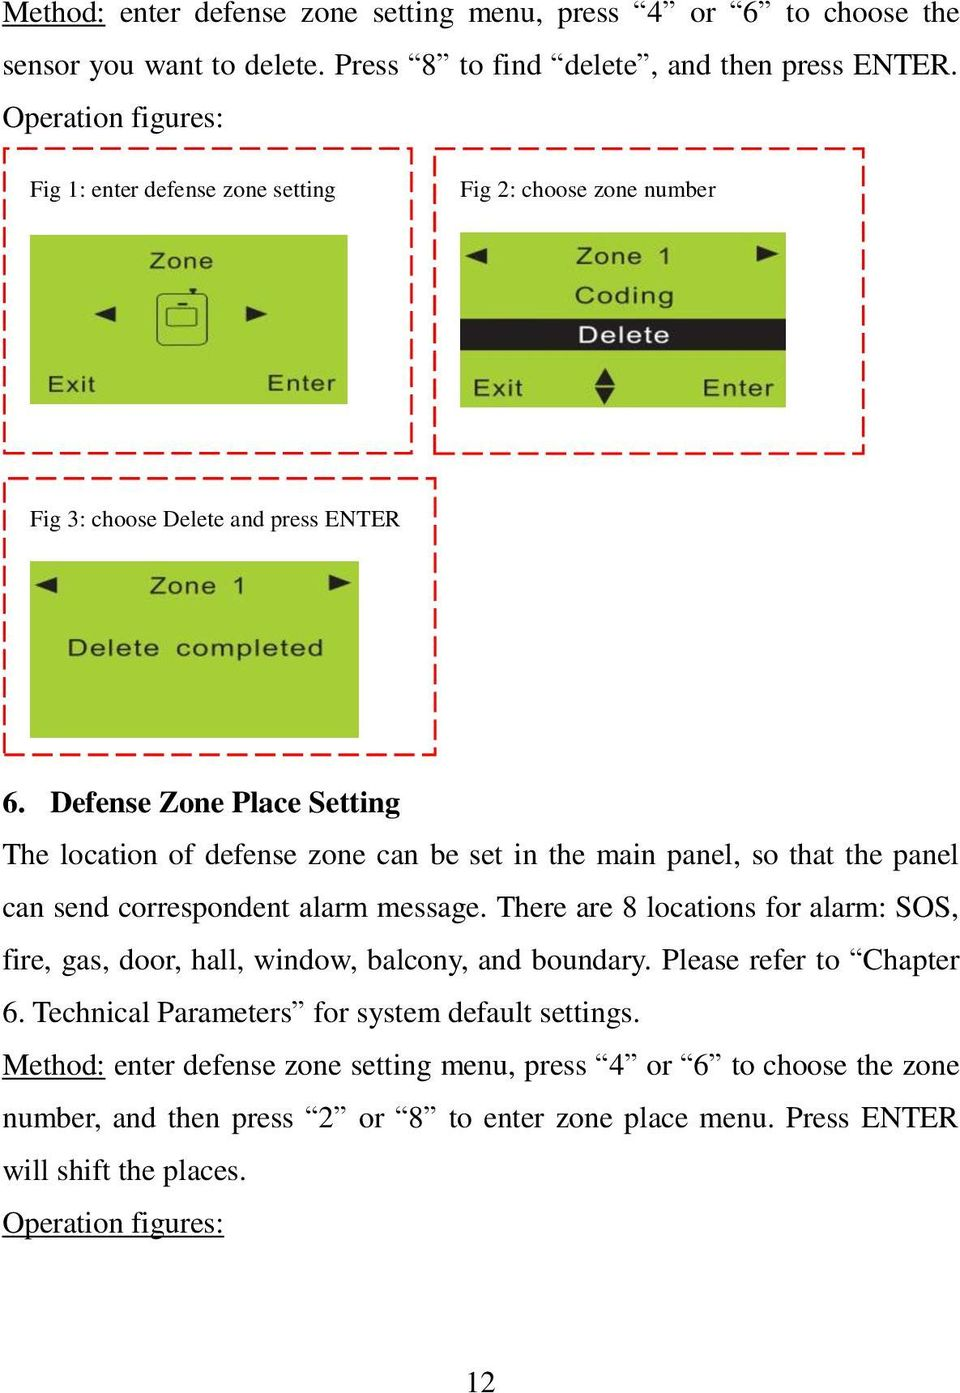 Defense Zone Place Setting The location of defense zone can be set in the main panel, so that the panel can send correspondent alarm message.